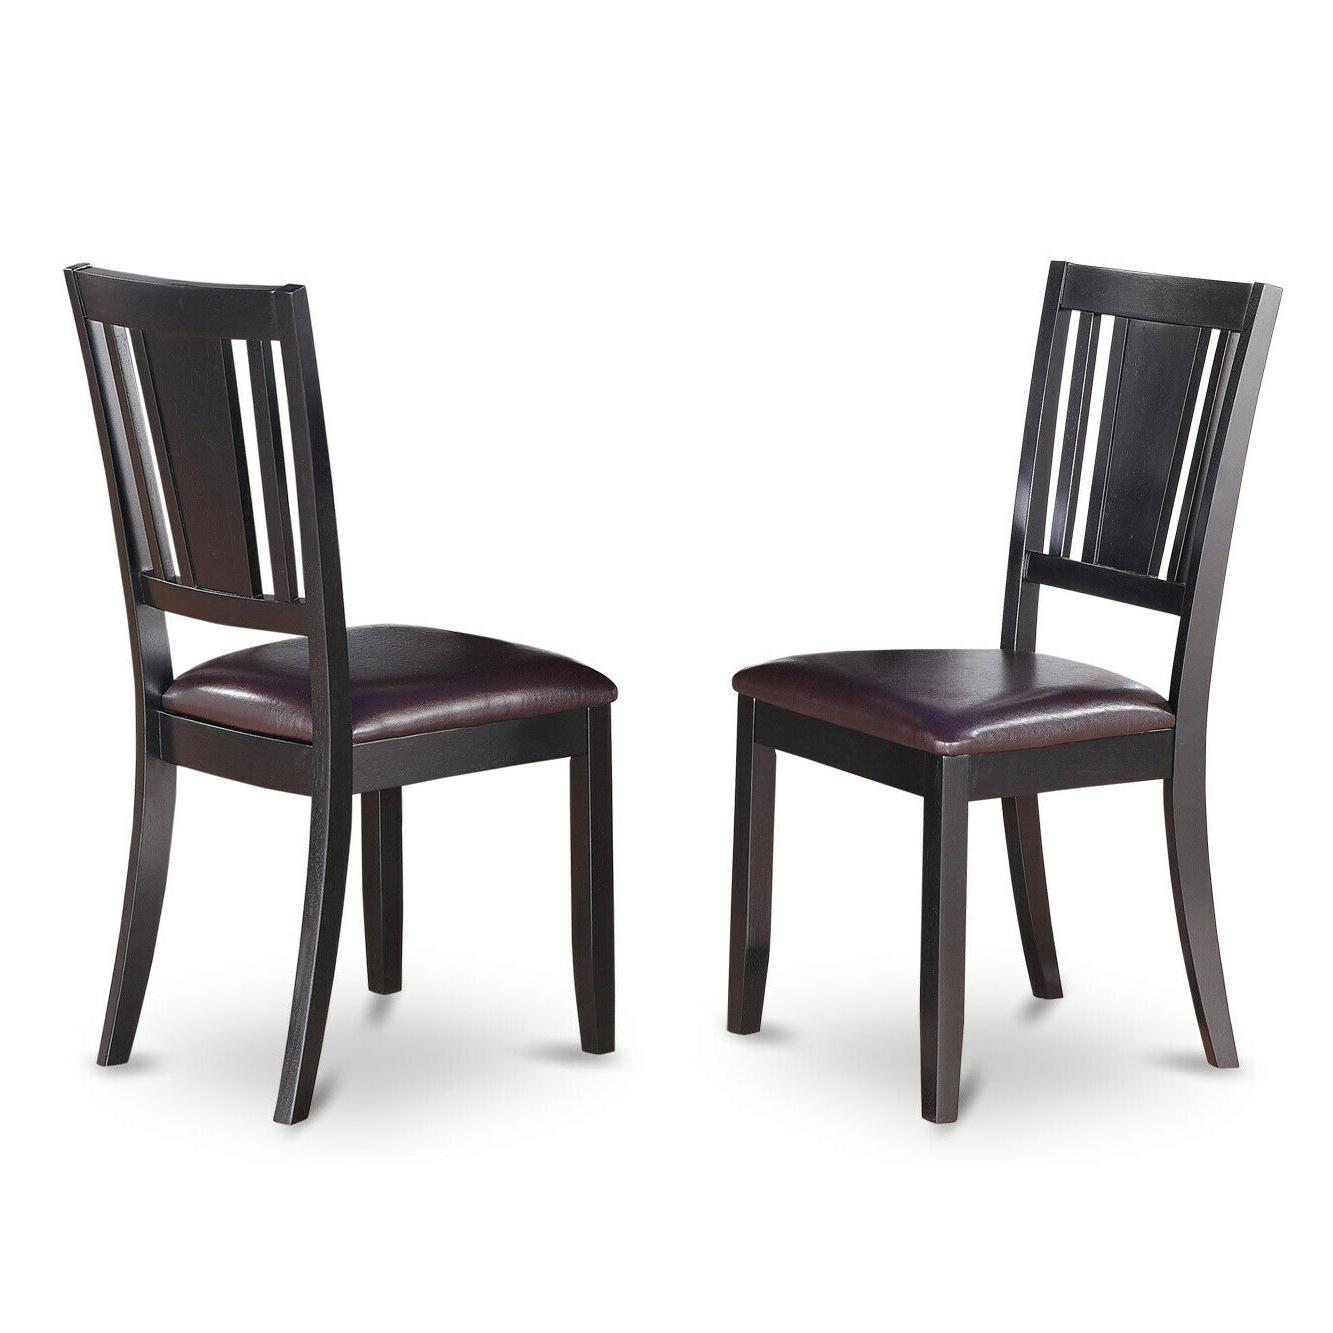 5pc Kitchen Dining Table 4 Seat Chairs Black